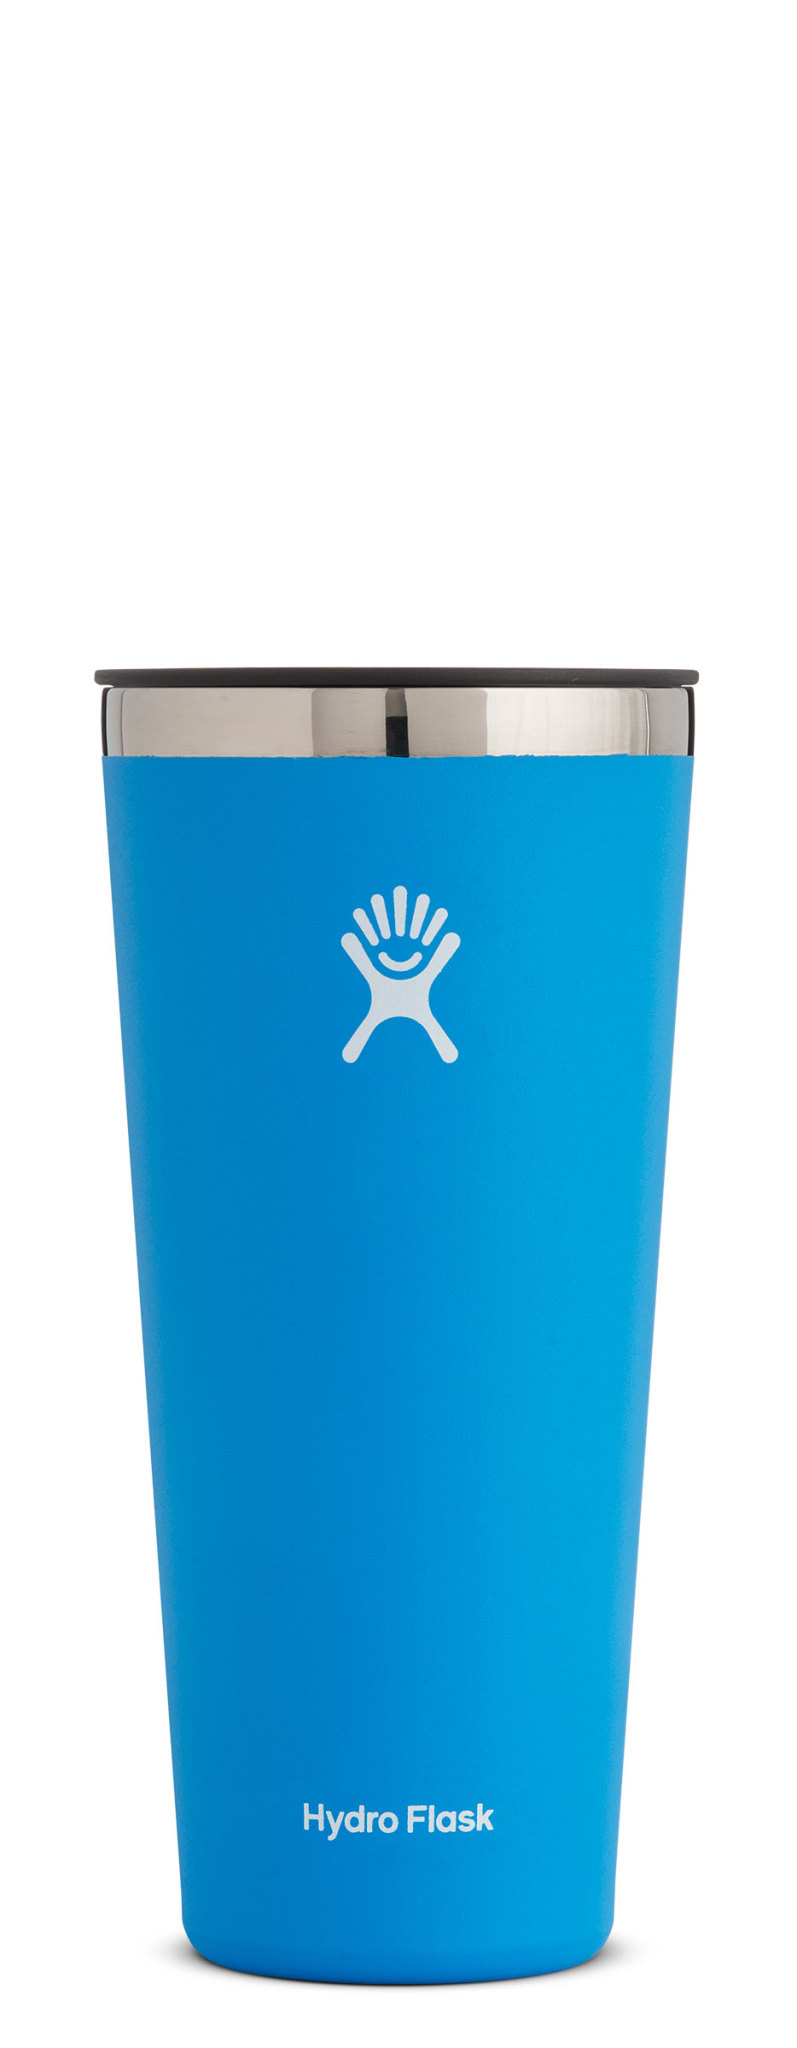 Hydro Flask 32oz Tumbler-3